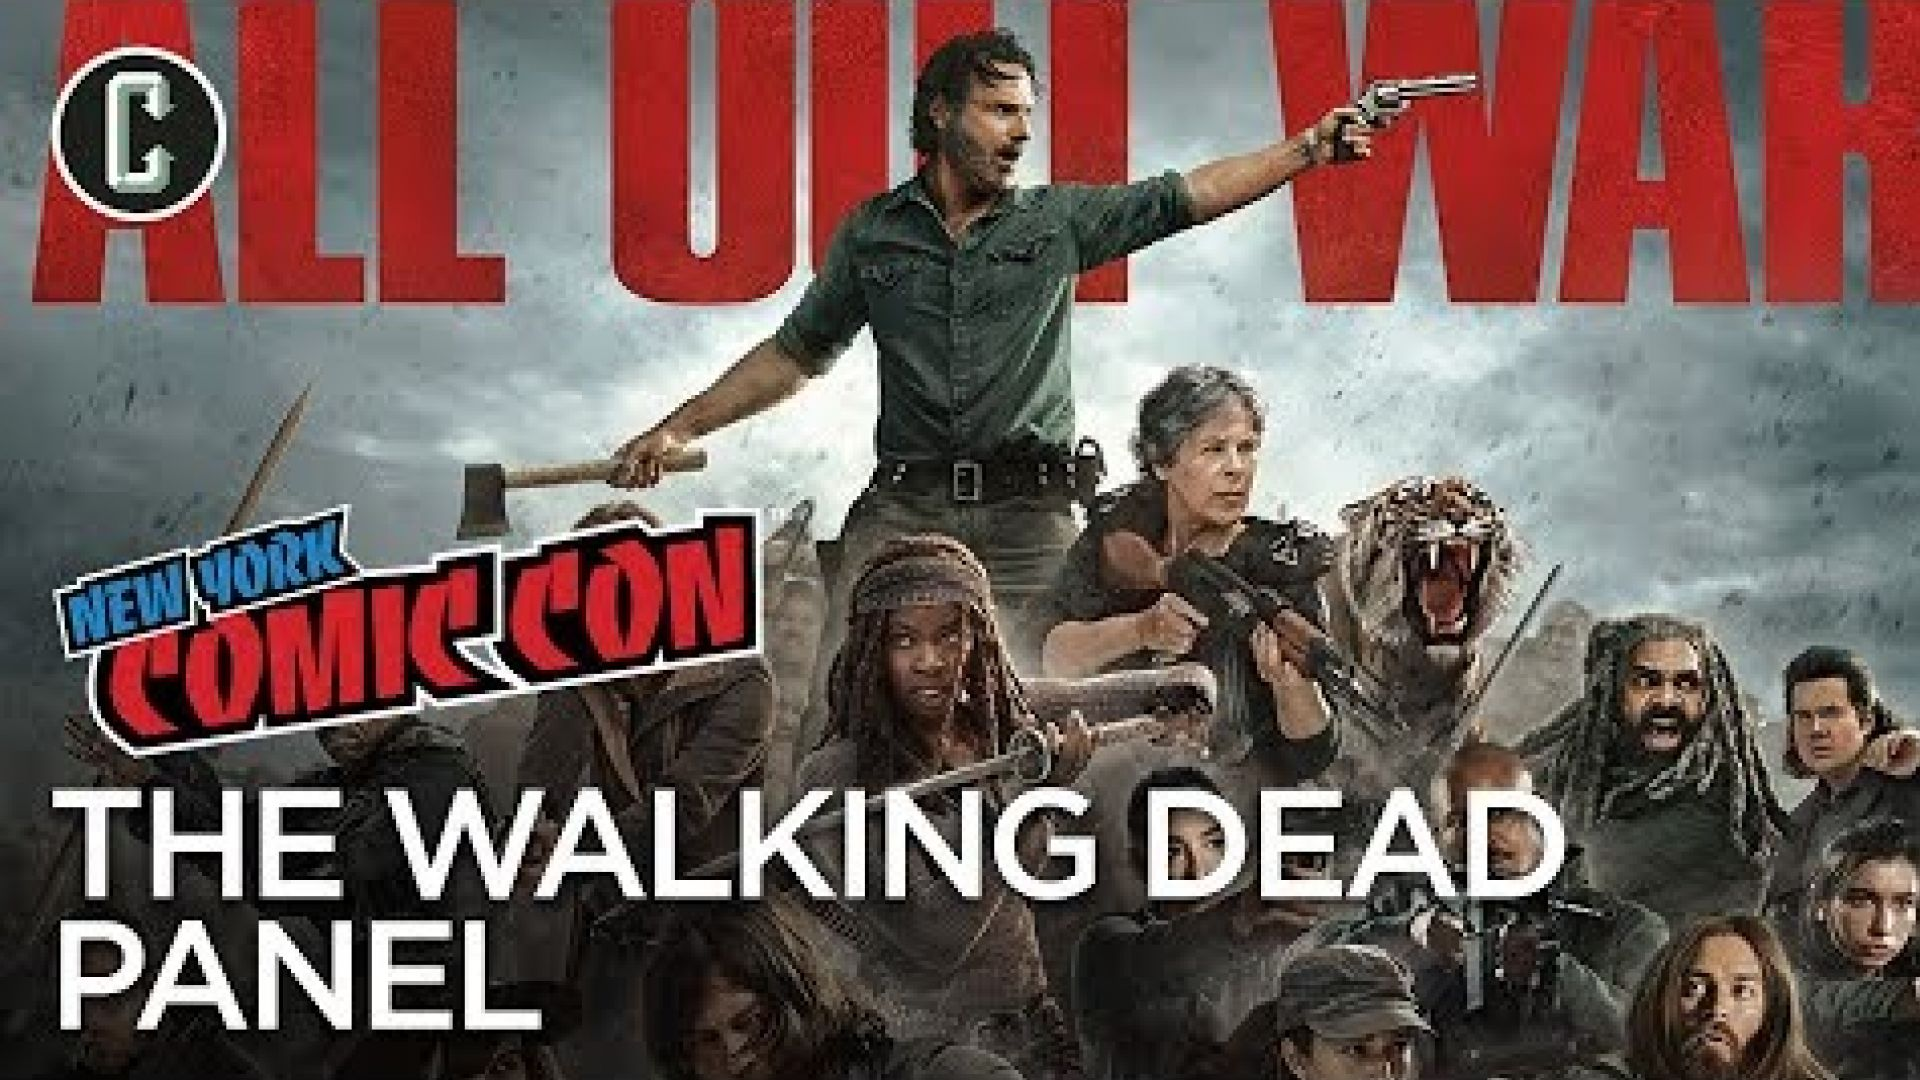 New York Comic Con - The Walking Dead Season 8 Panel